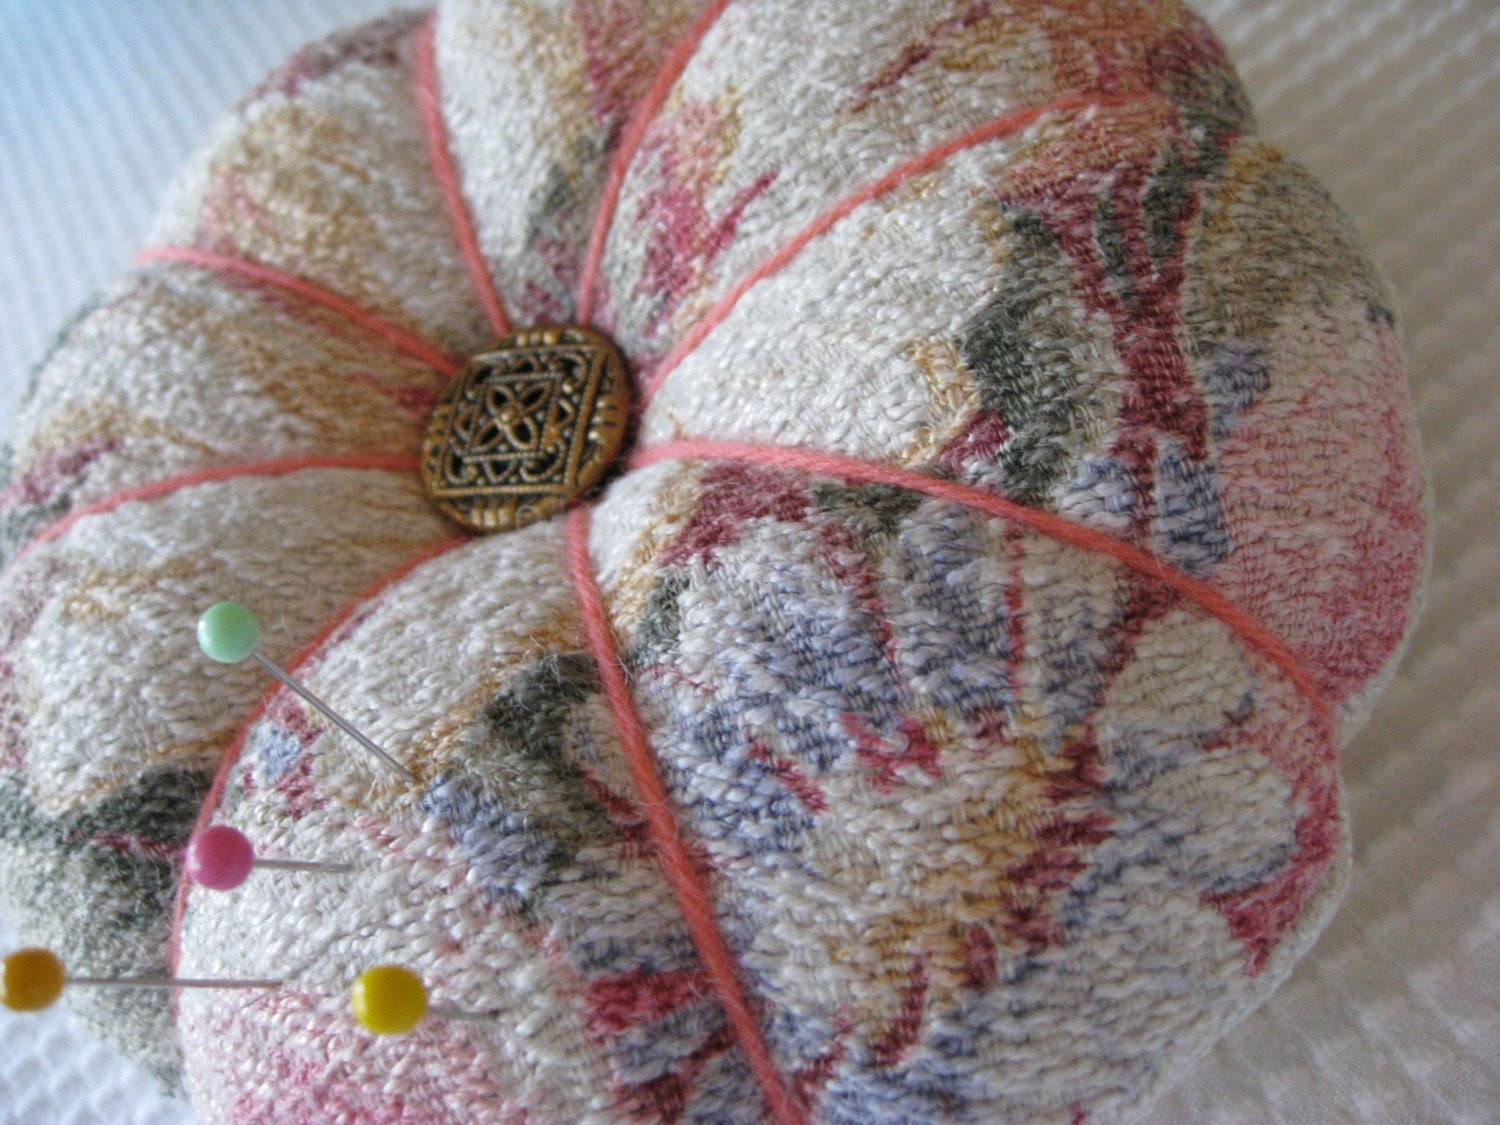 Handcrafted Pincushion or Brooch Cushion - Vintage Barkcloth - Glencourt Pattern - Shabby Chic